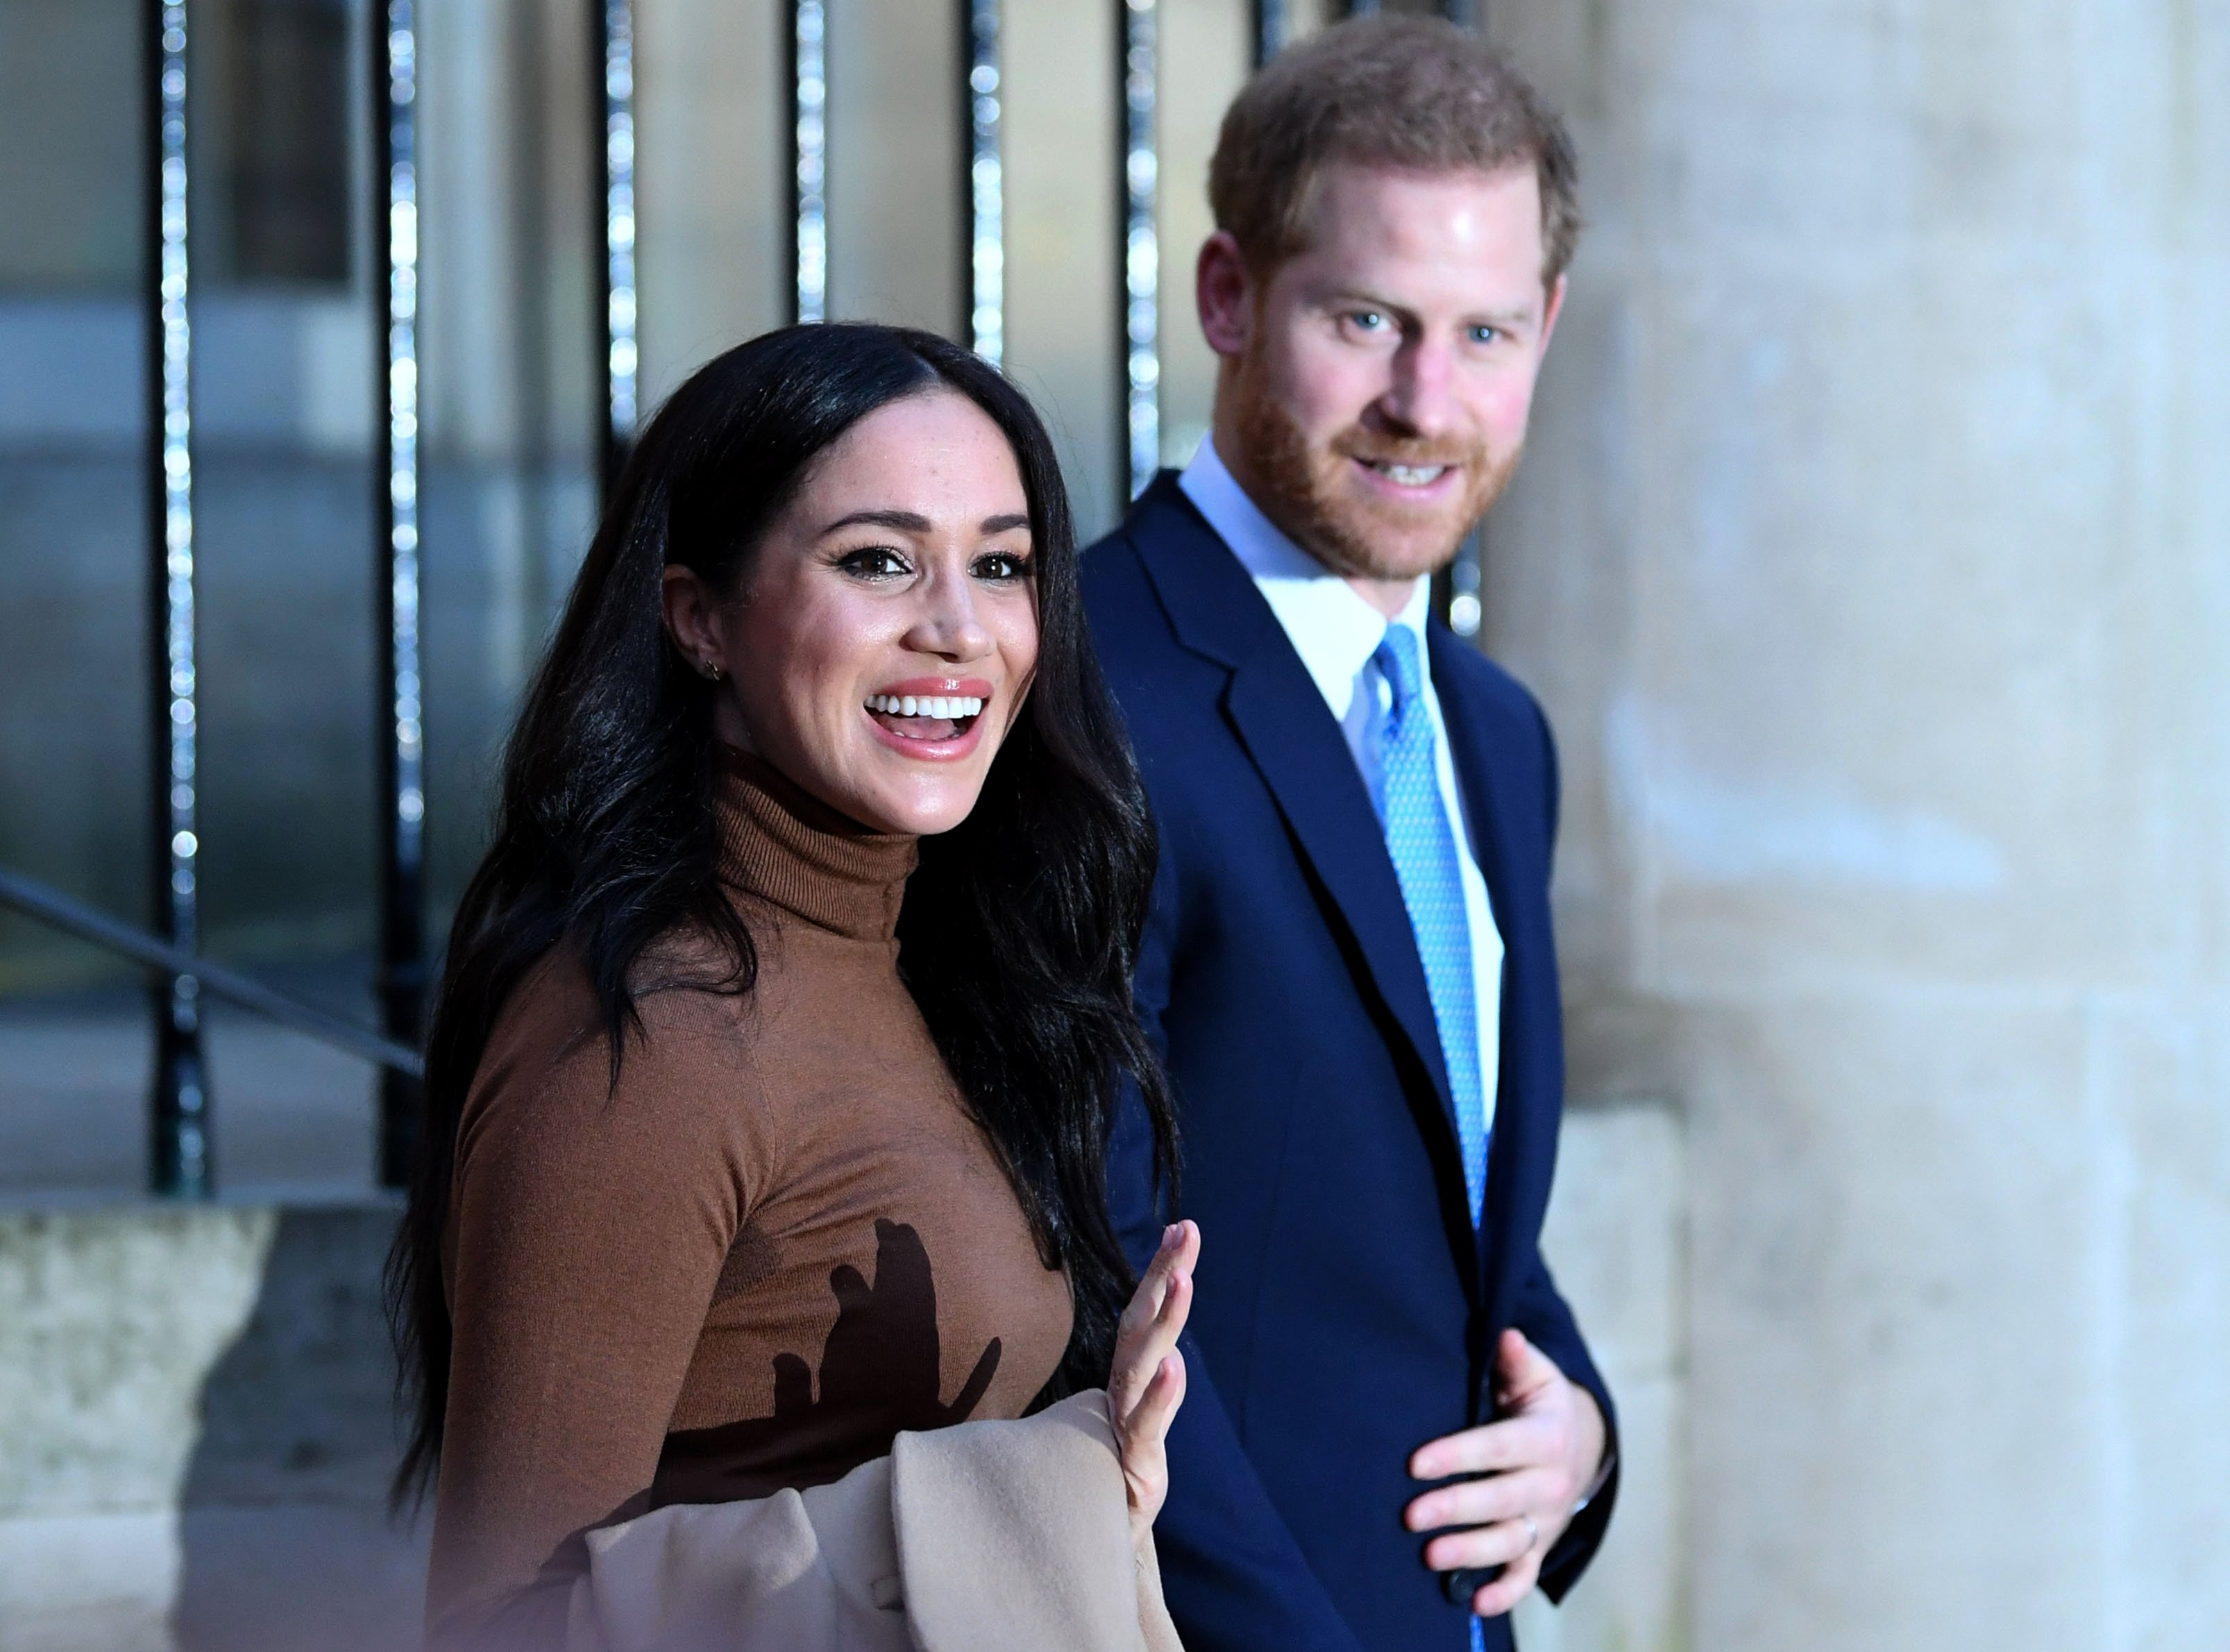 Prince Harry and Meghan Markle after their visit to Canada House on January 7, 2020, in London, England. | Source: Getty Images.